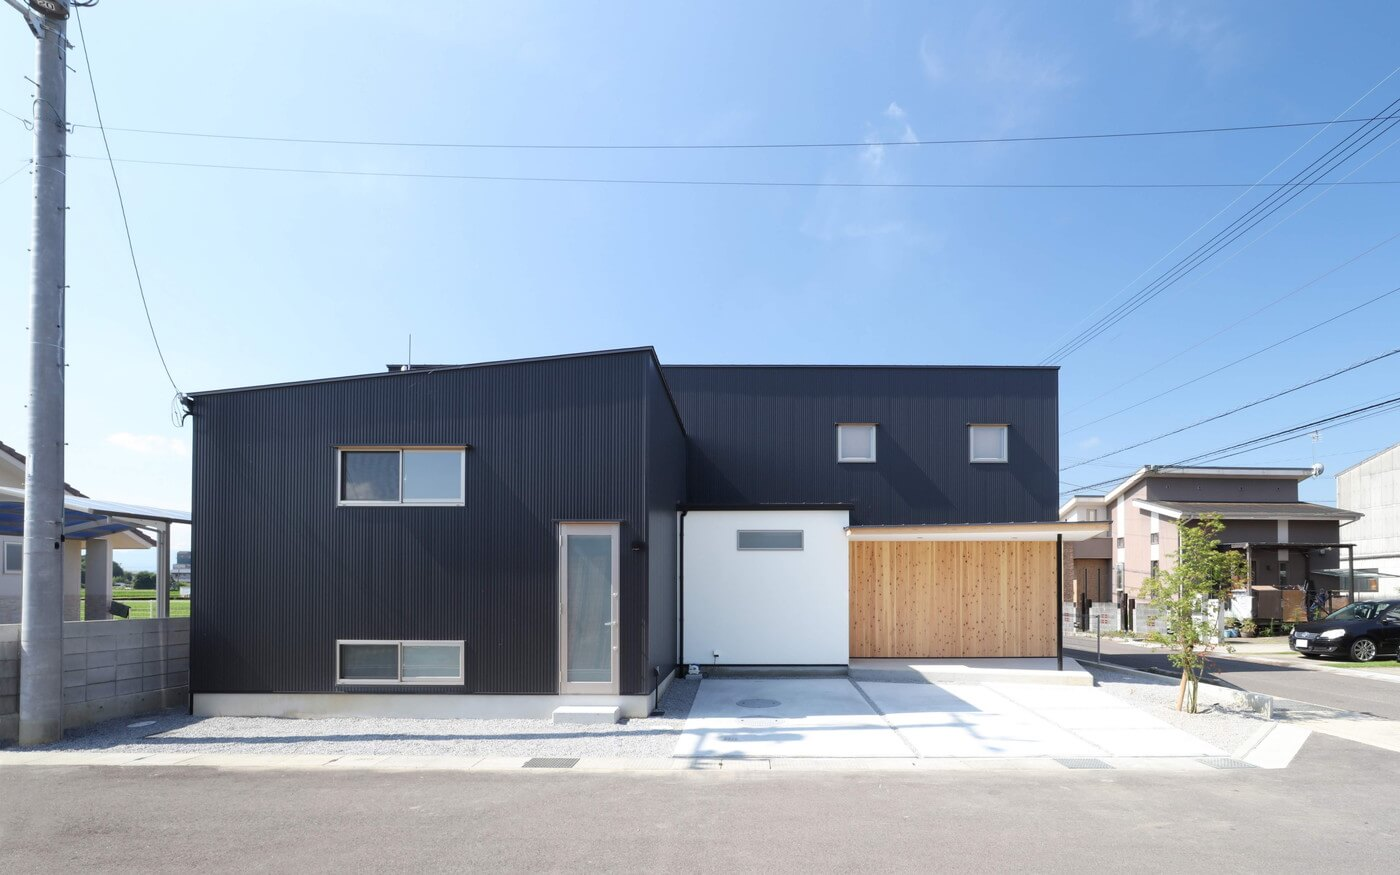 中筋の家 -House in Nakasuji-